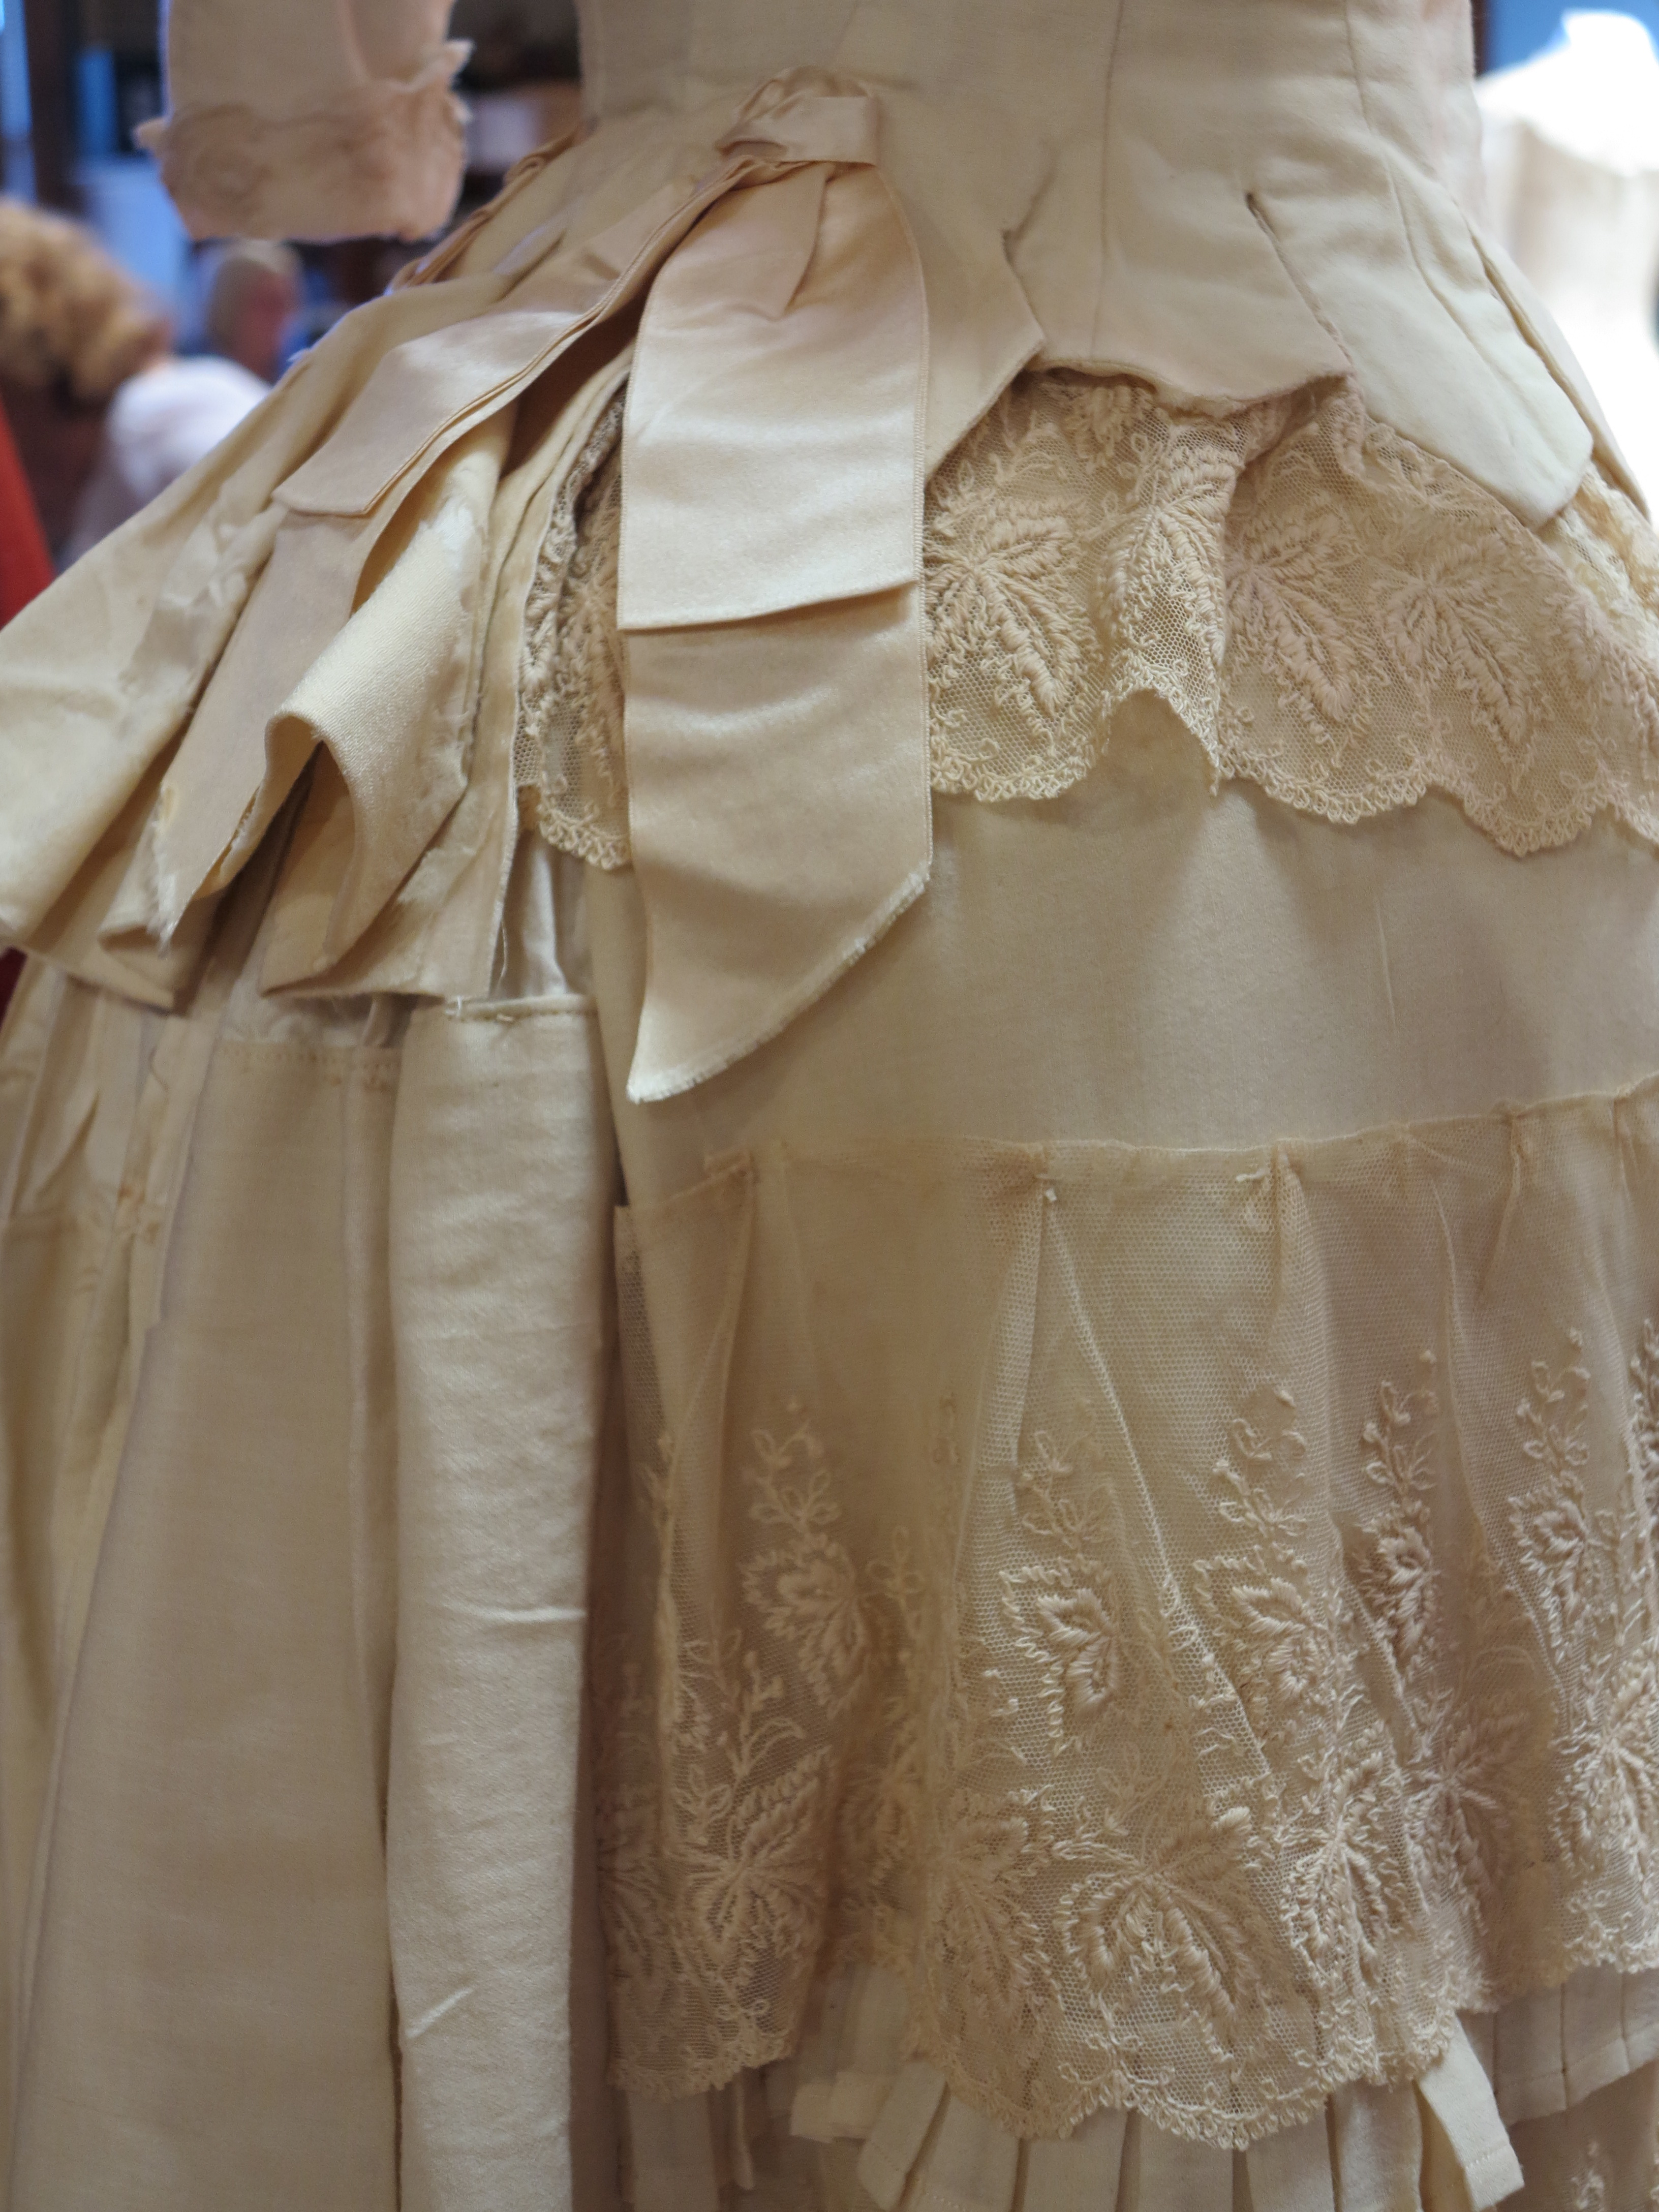 After Attending Petaluma Museum S Cake And Champagne Opening Reception For Its Latest Presentation An Exhibit Of Local Historical Wedding Dresses